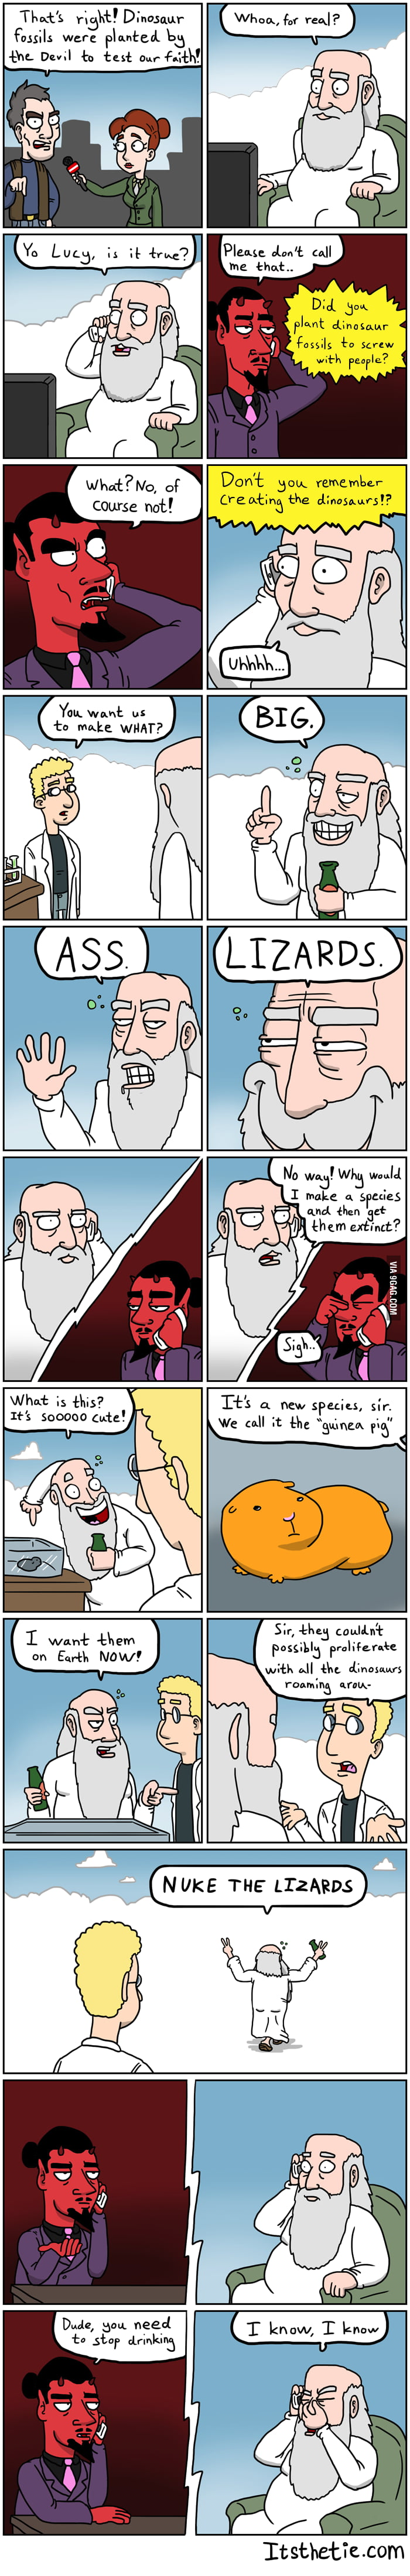 God vs Satan: Fossils